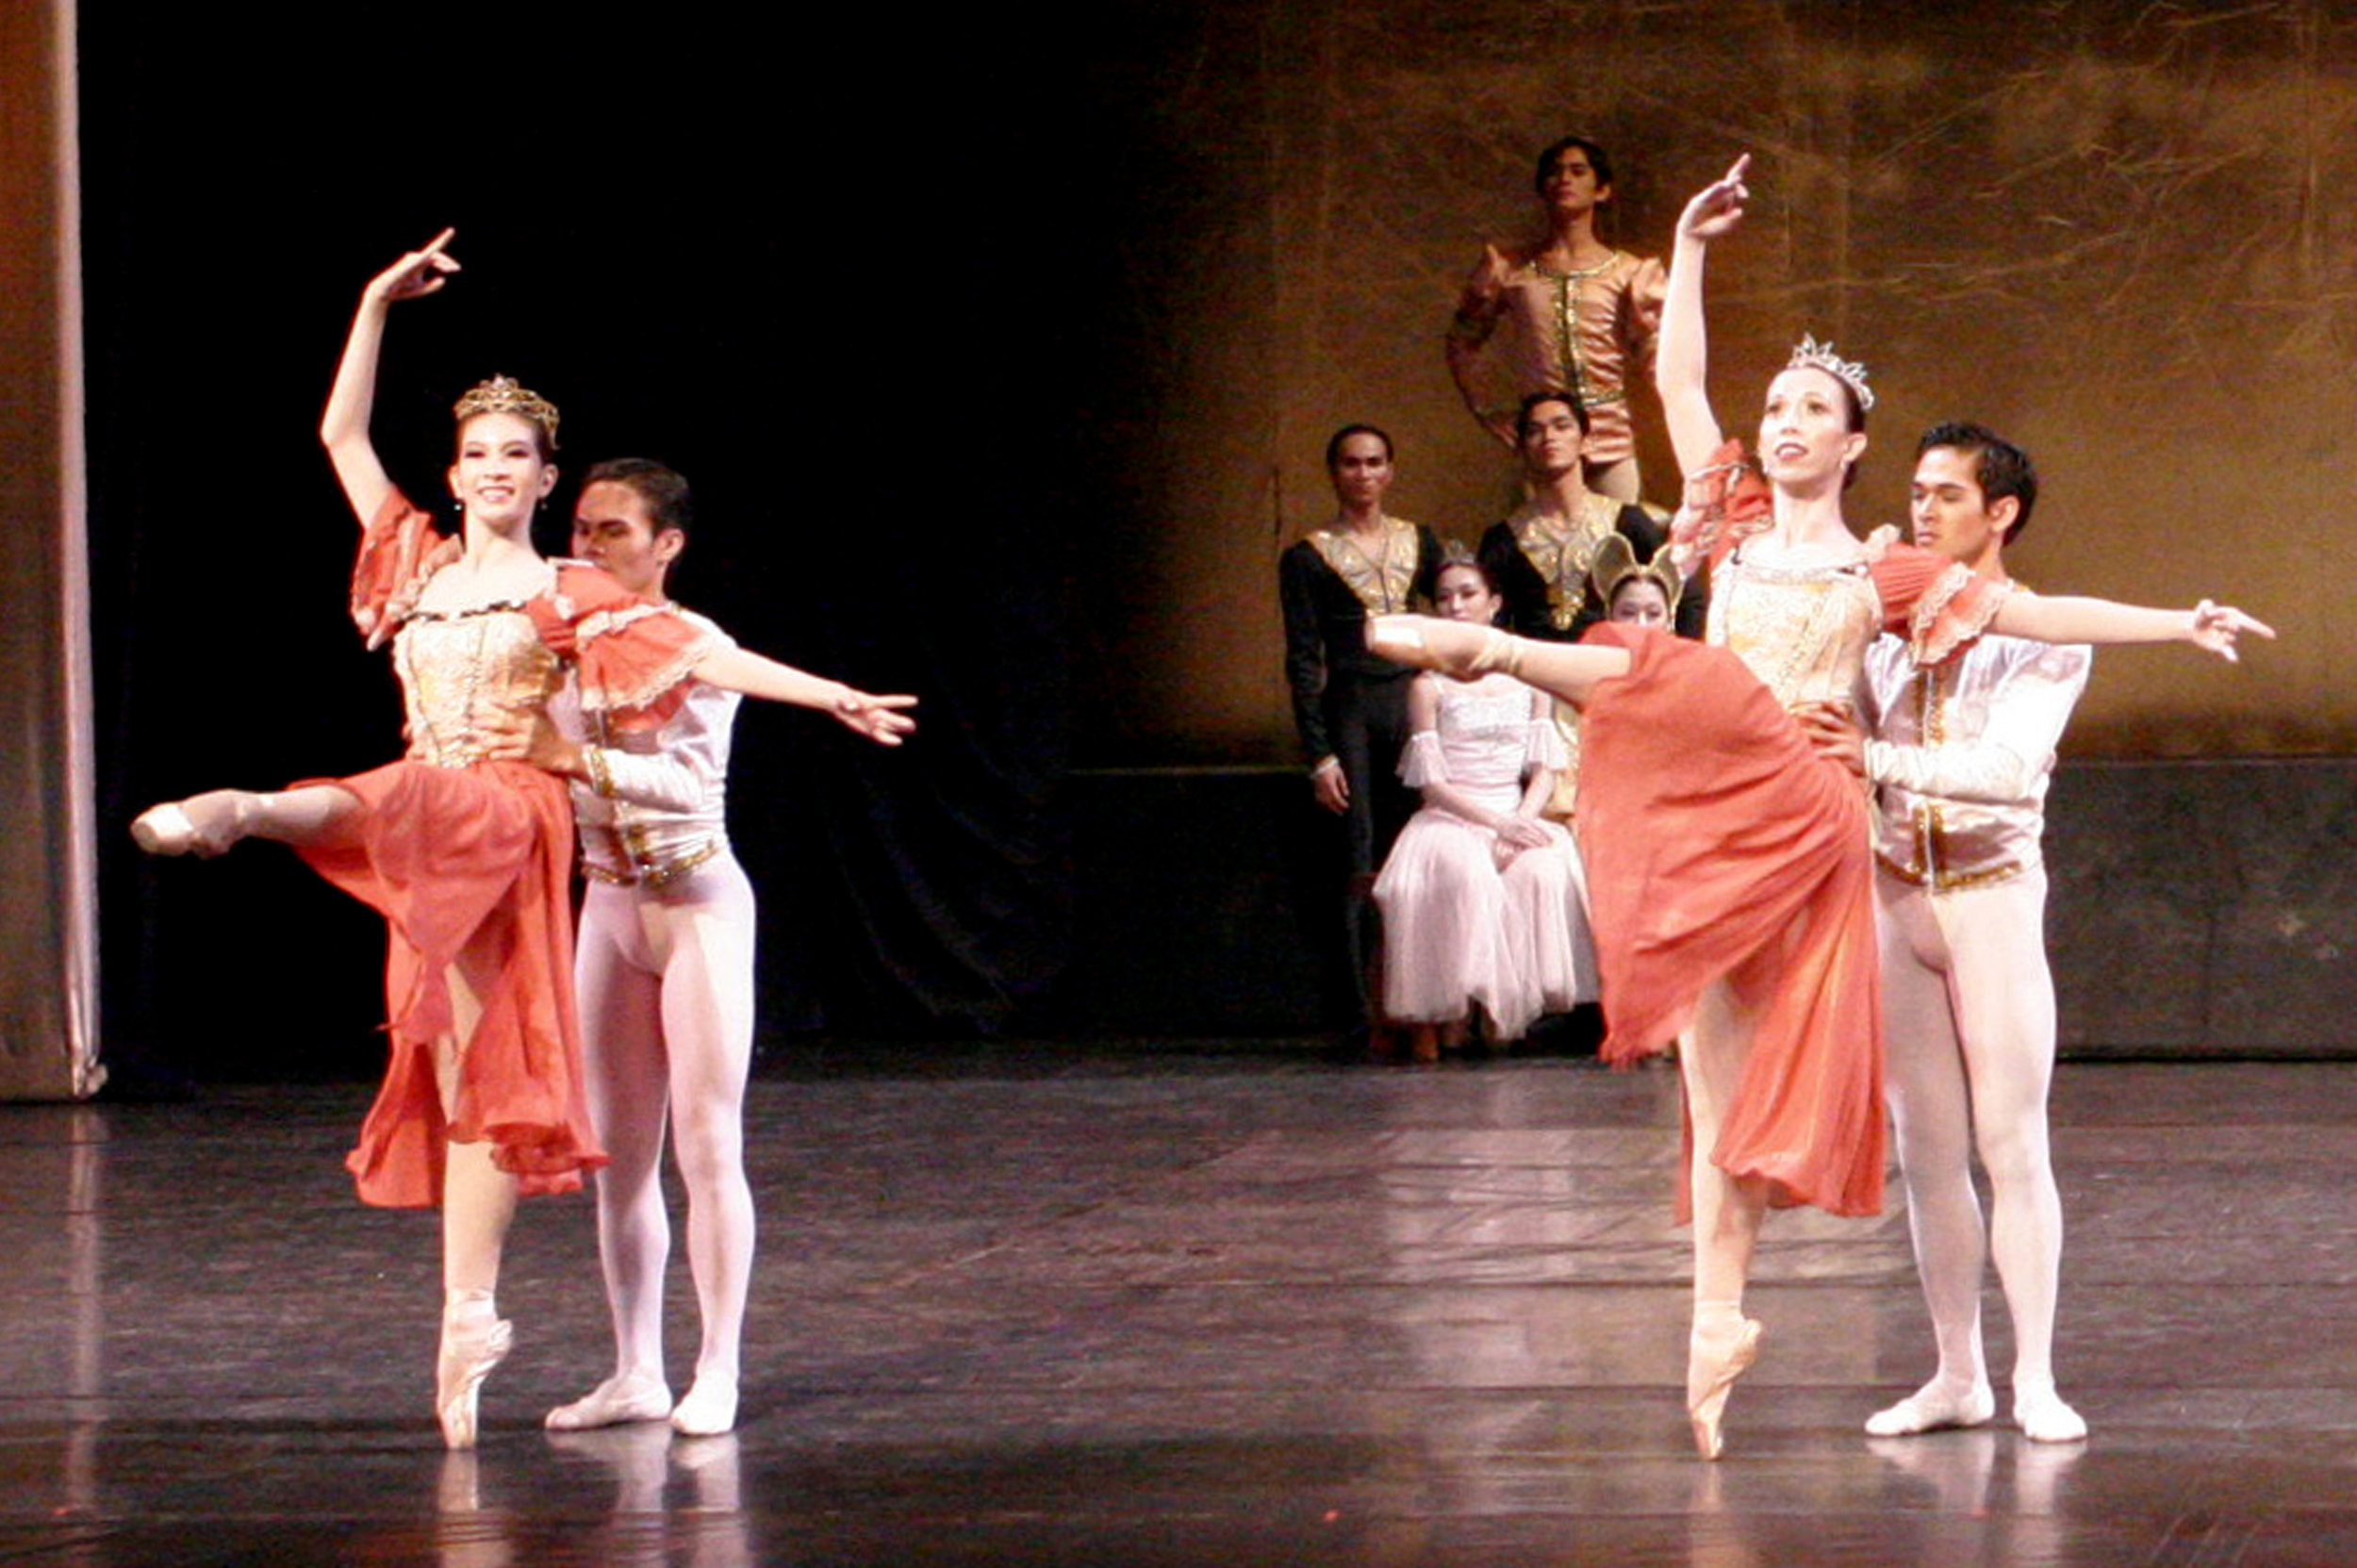 Promoted to company artist in 2005, Rudy danced in various classical productions. He is seen in this photo partnering Eileen Lopez In  Swan Lake . Photo by Ocs Alvarez